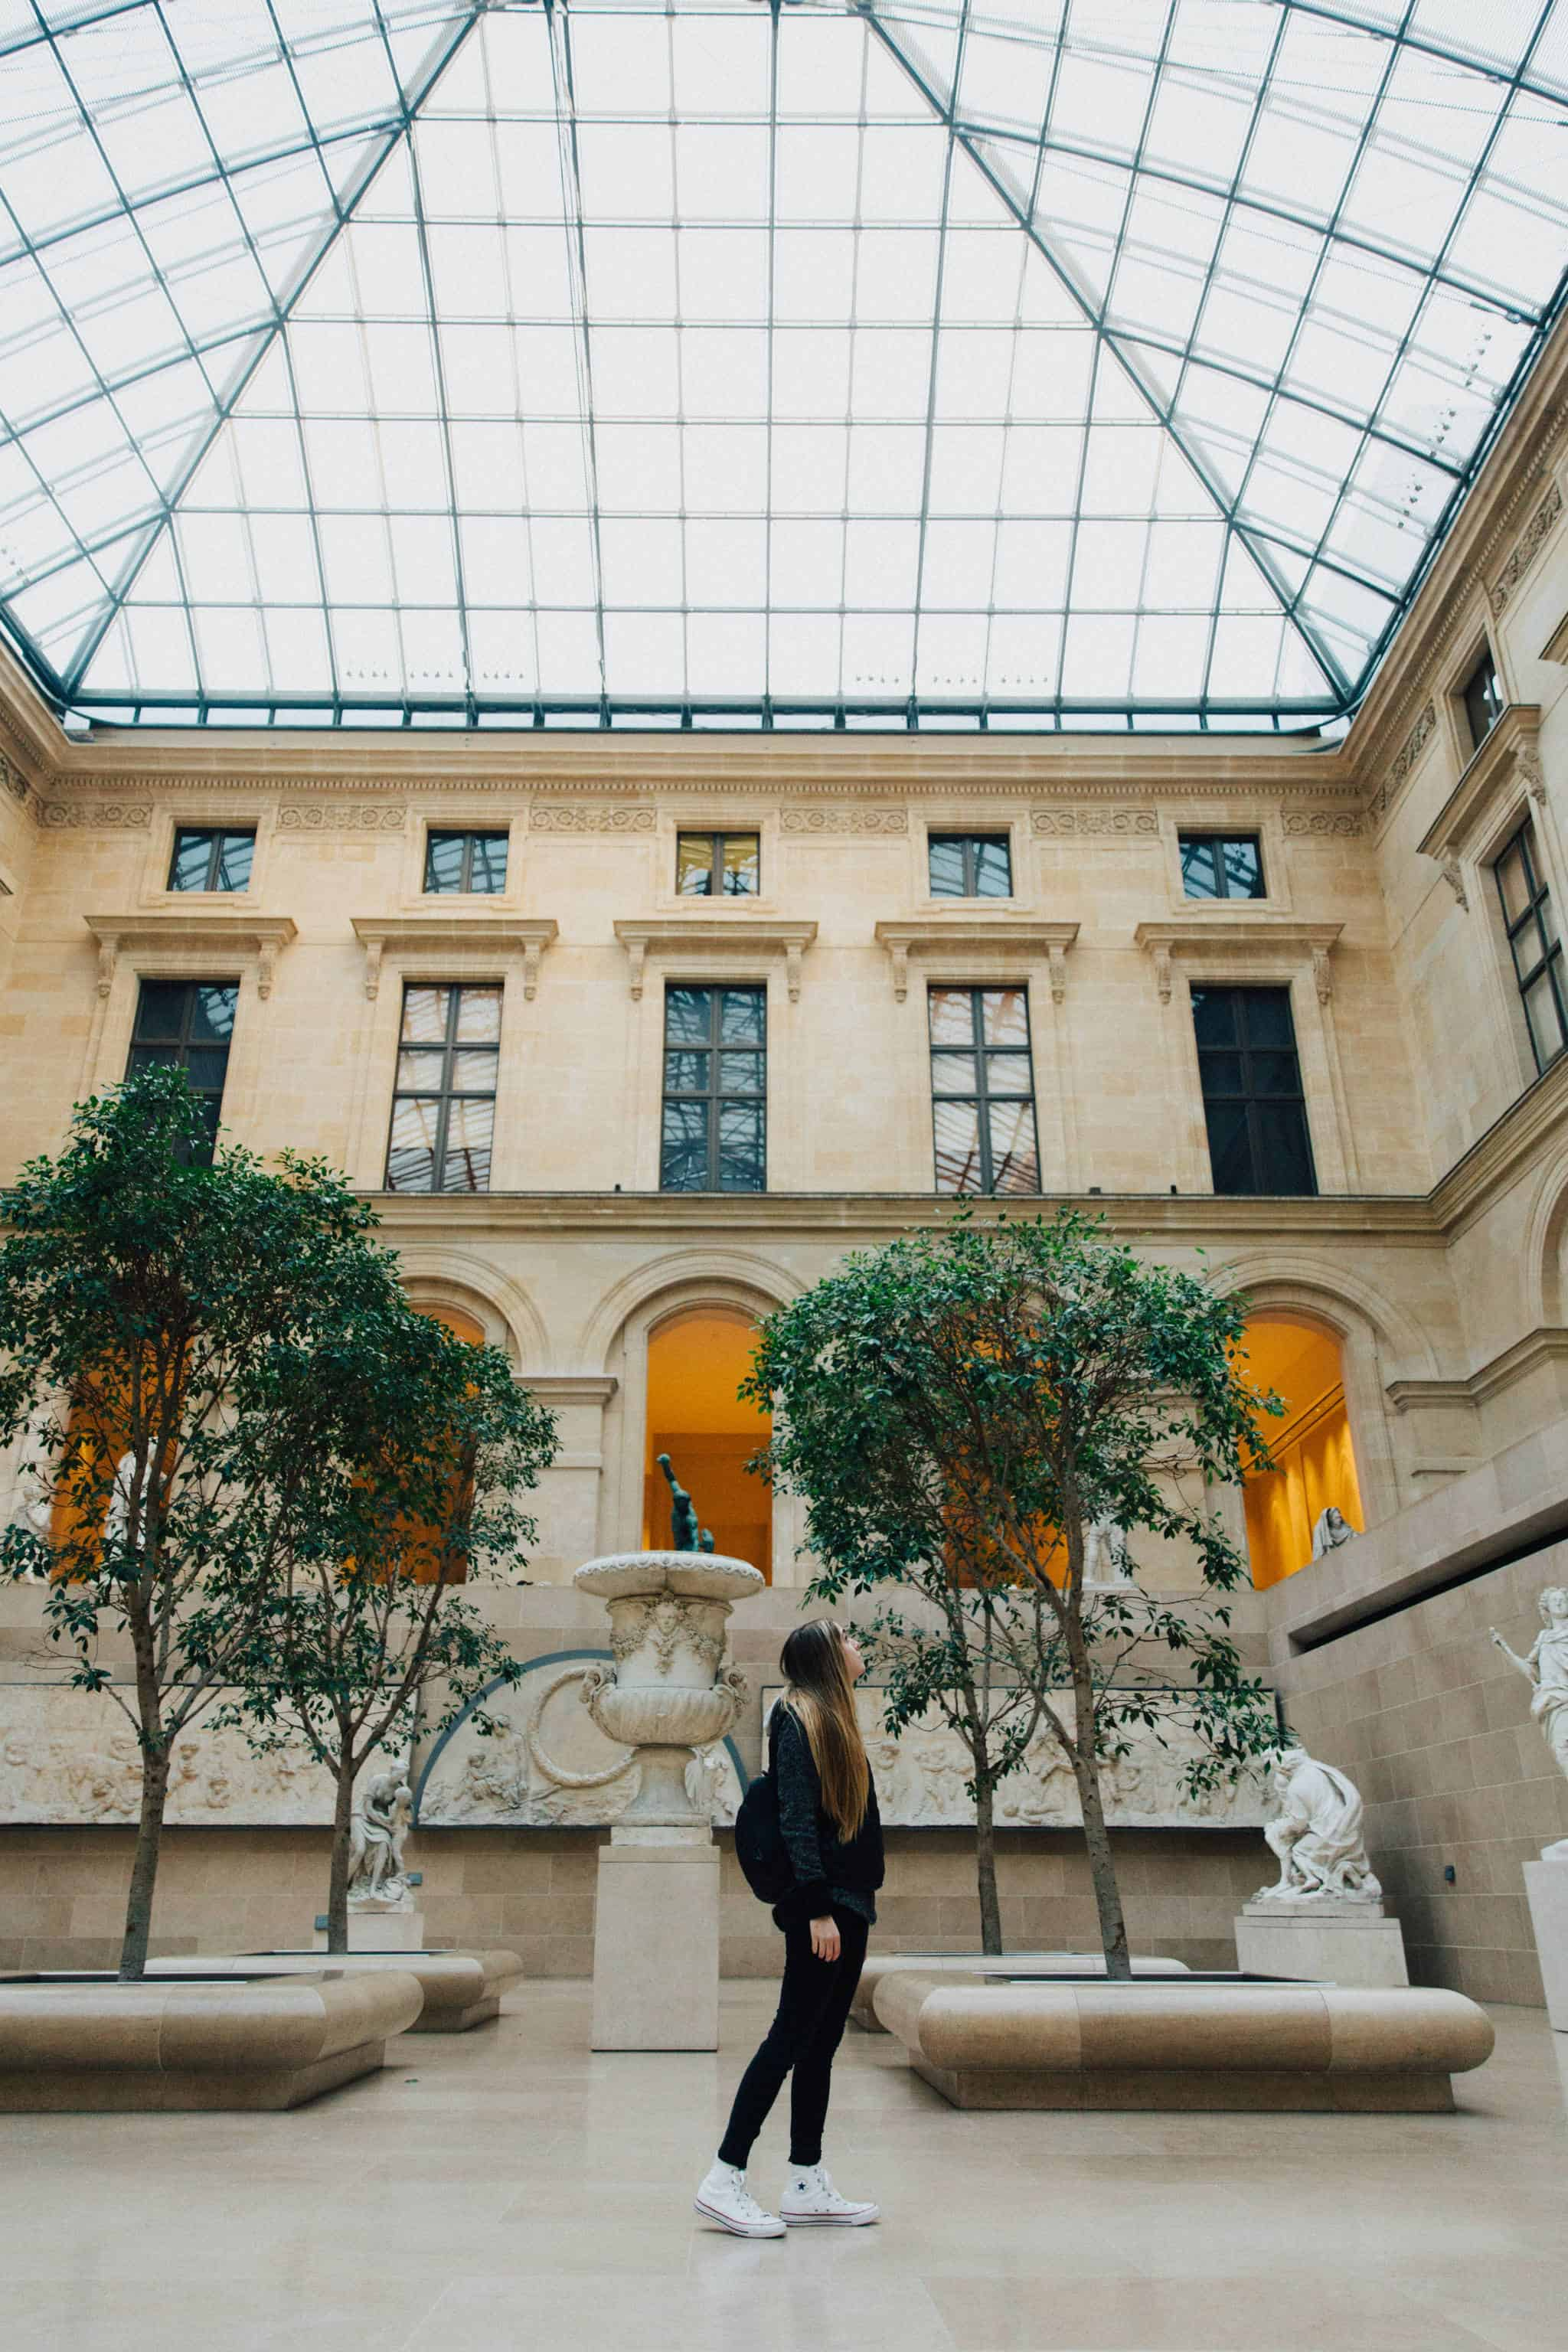 Inside the Lovre Museum - Discover the best photography spots in Paris, France in this all-inclusive post! We're including iconic favorites like the Eiffel Tower and Champs Elyssse, but also hidden gems like Saint Chapelle and Musee d'Orsay Clocks. Find the best Instagram spots in Paris here! #paris #france #eiffeltower #photography #french #instagram #laduree #champselysees #museedorsay #arcdetriomphe #louvre #macaron #europe